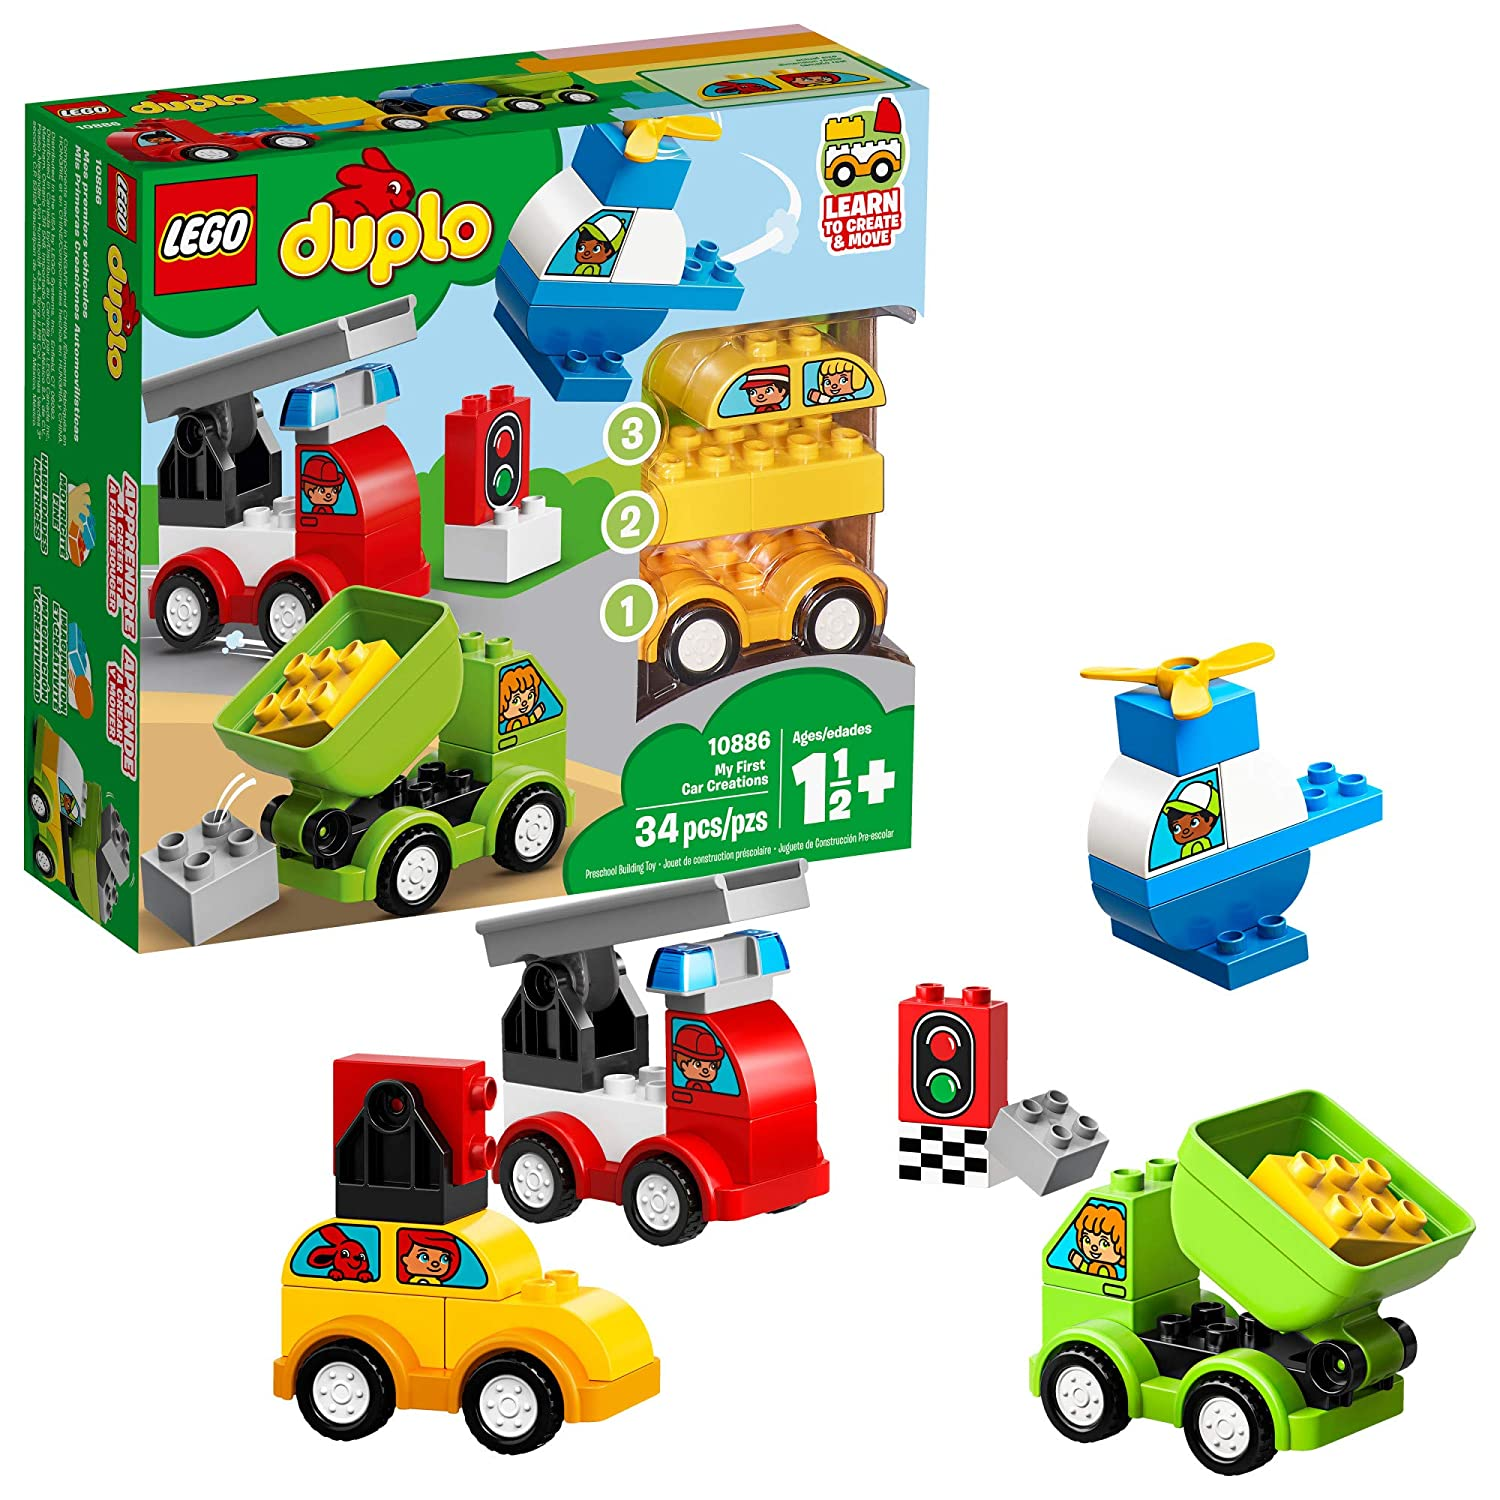 LEGO DUPLO My First Car Creations 10886 Building Blocks, New 2019 (34 Pieces)